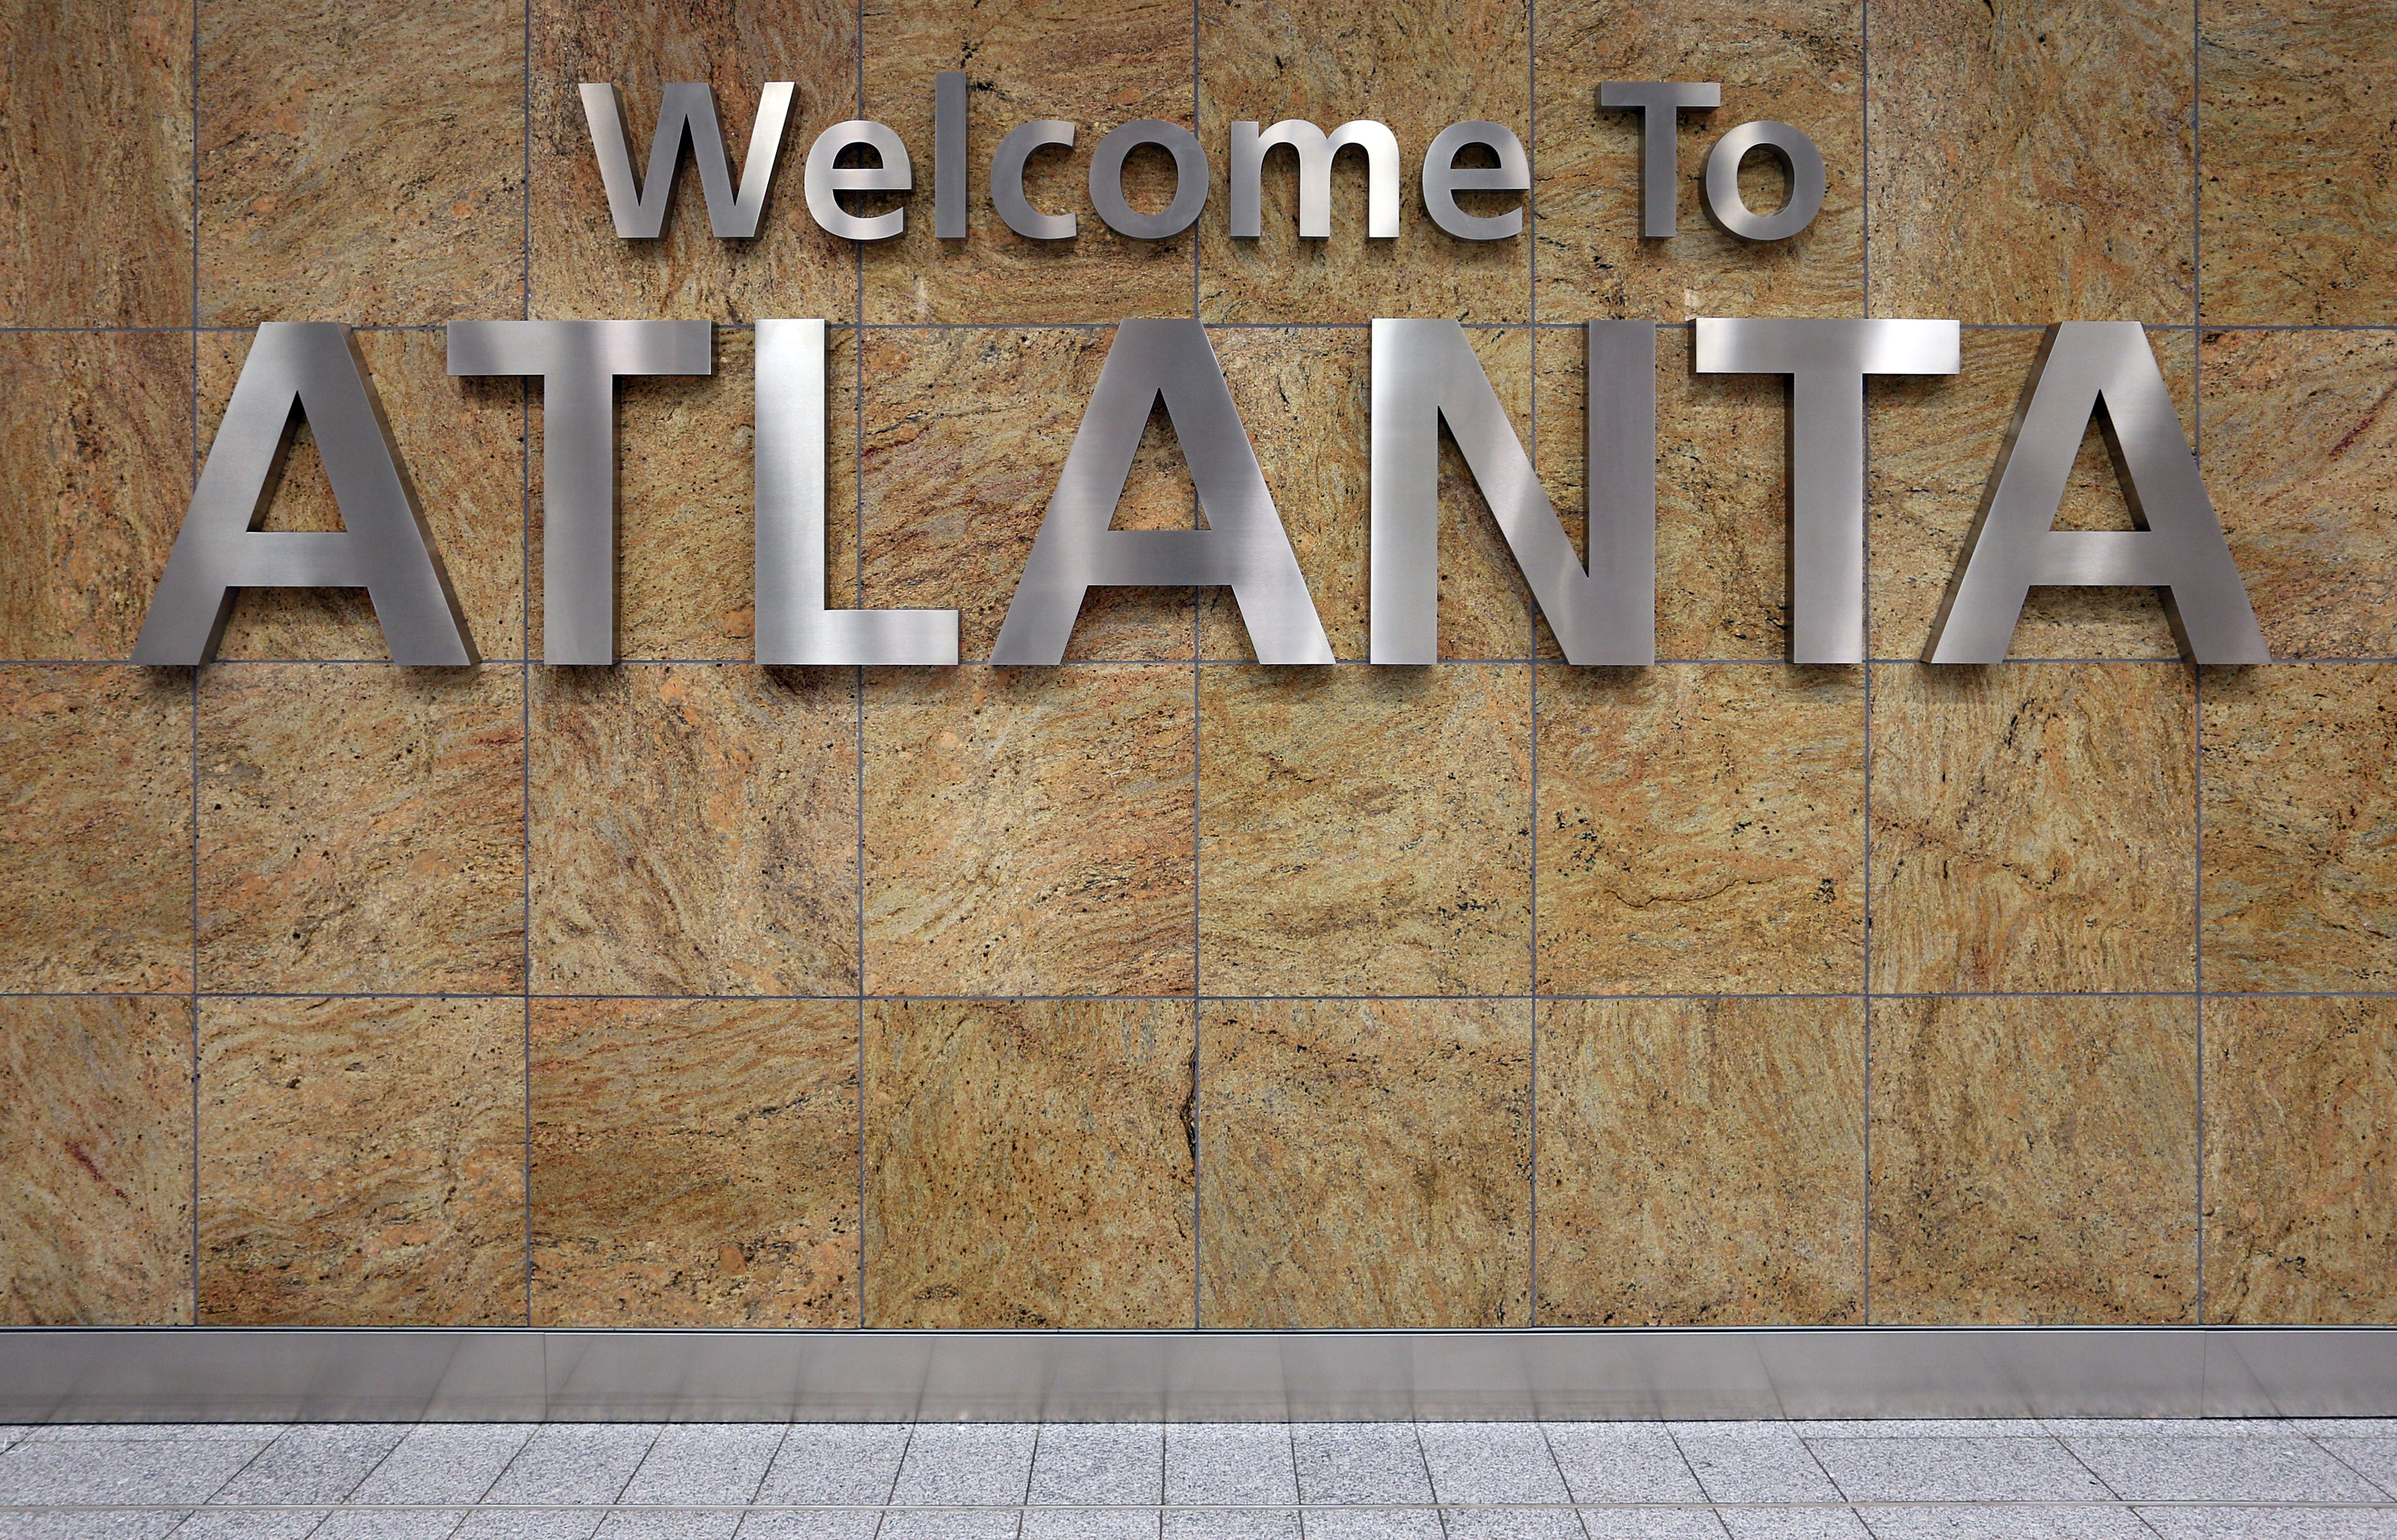 Car Services to the Atlanta